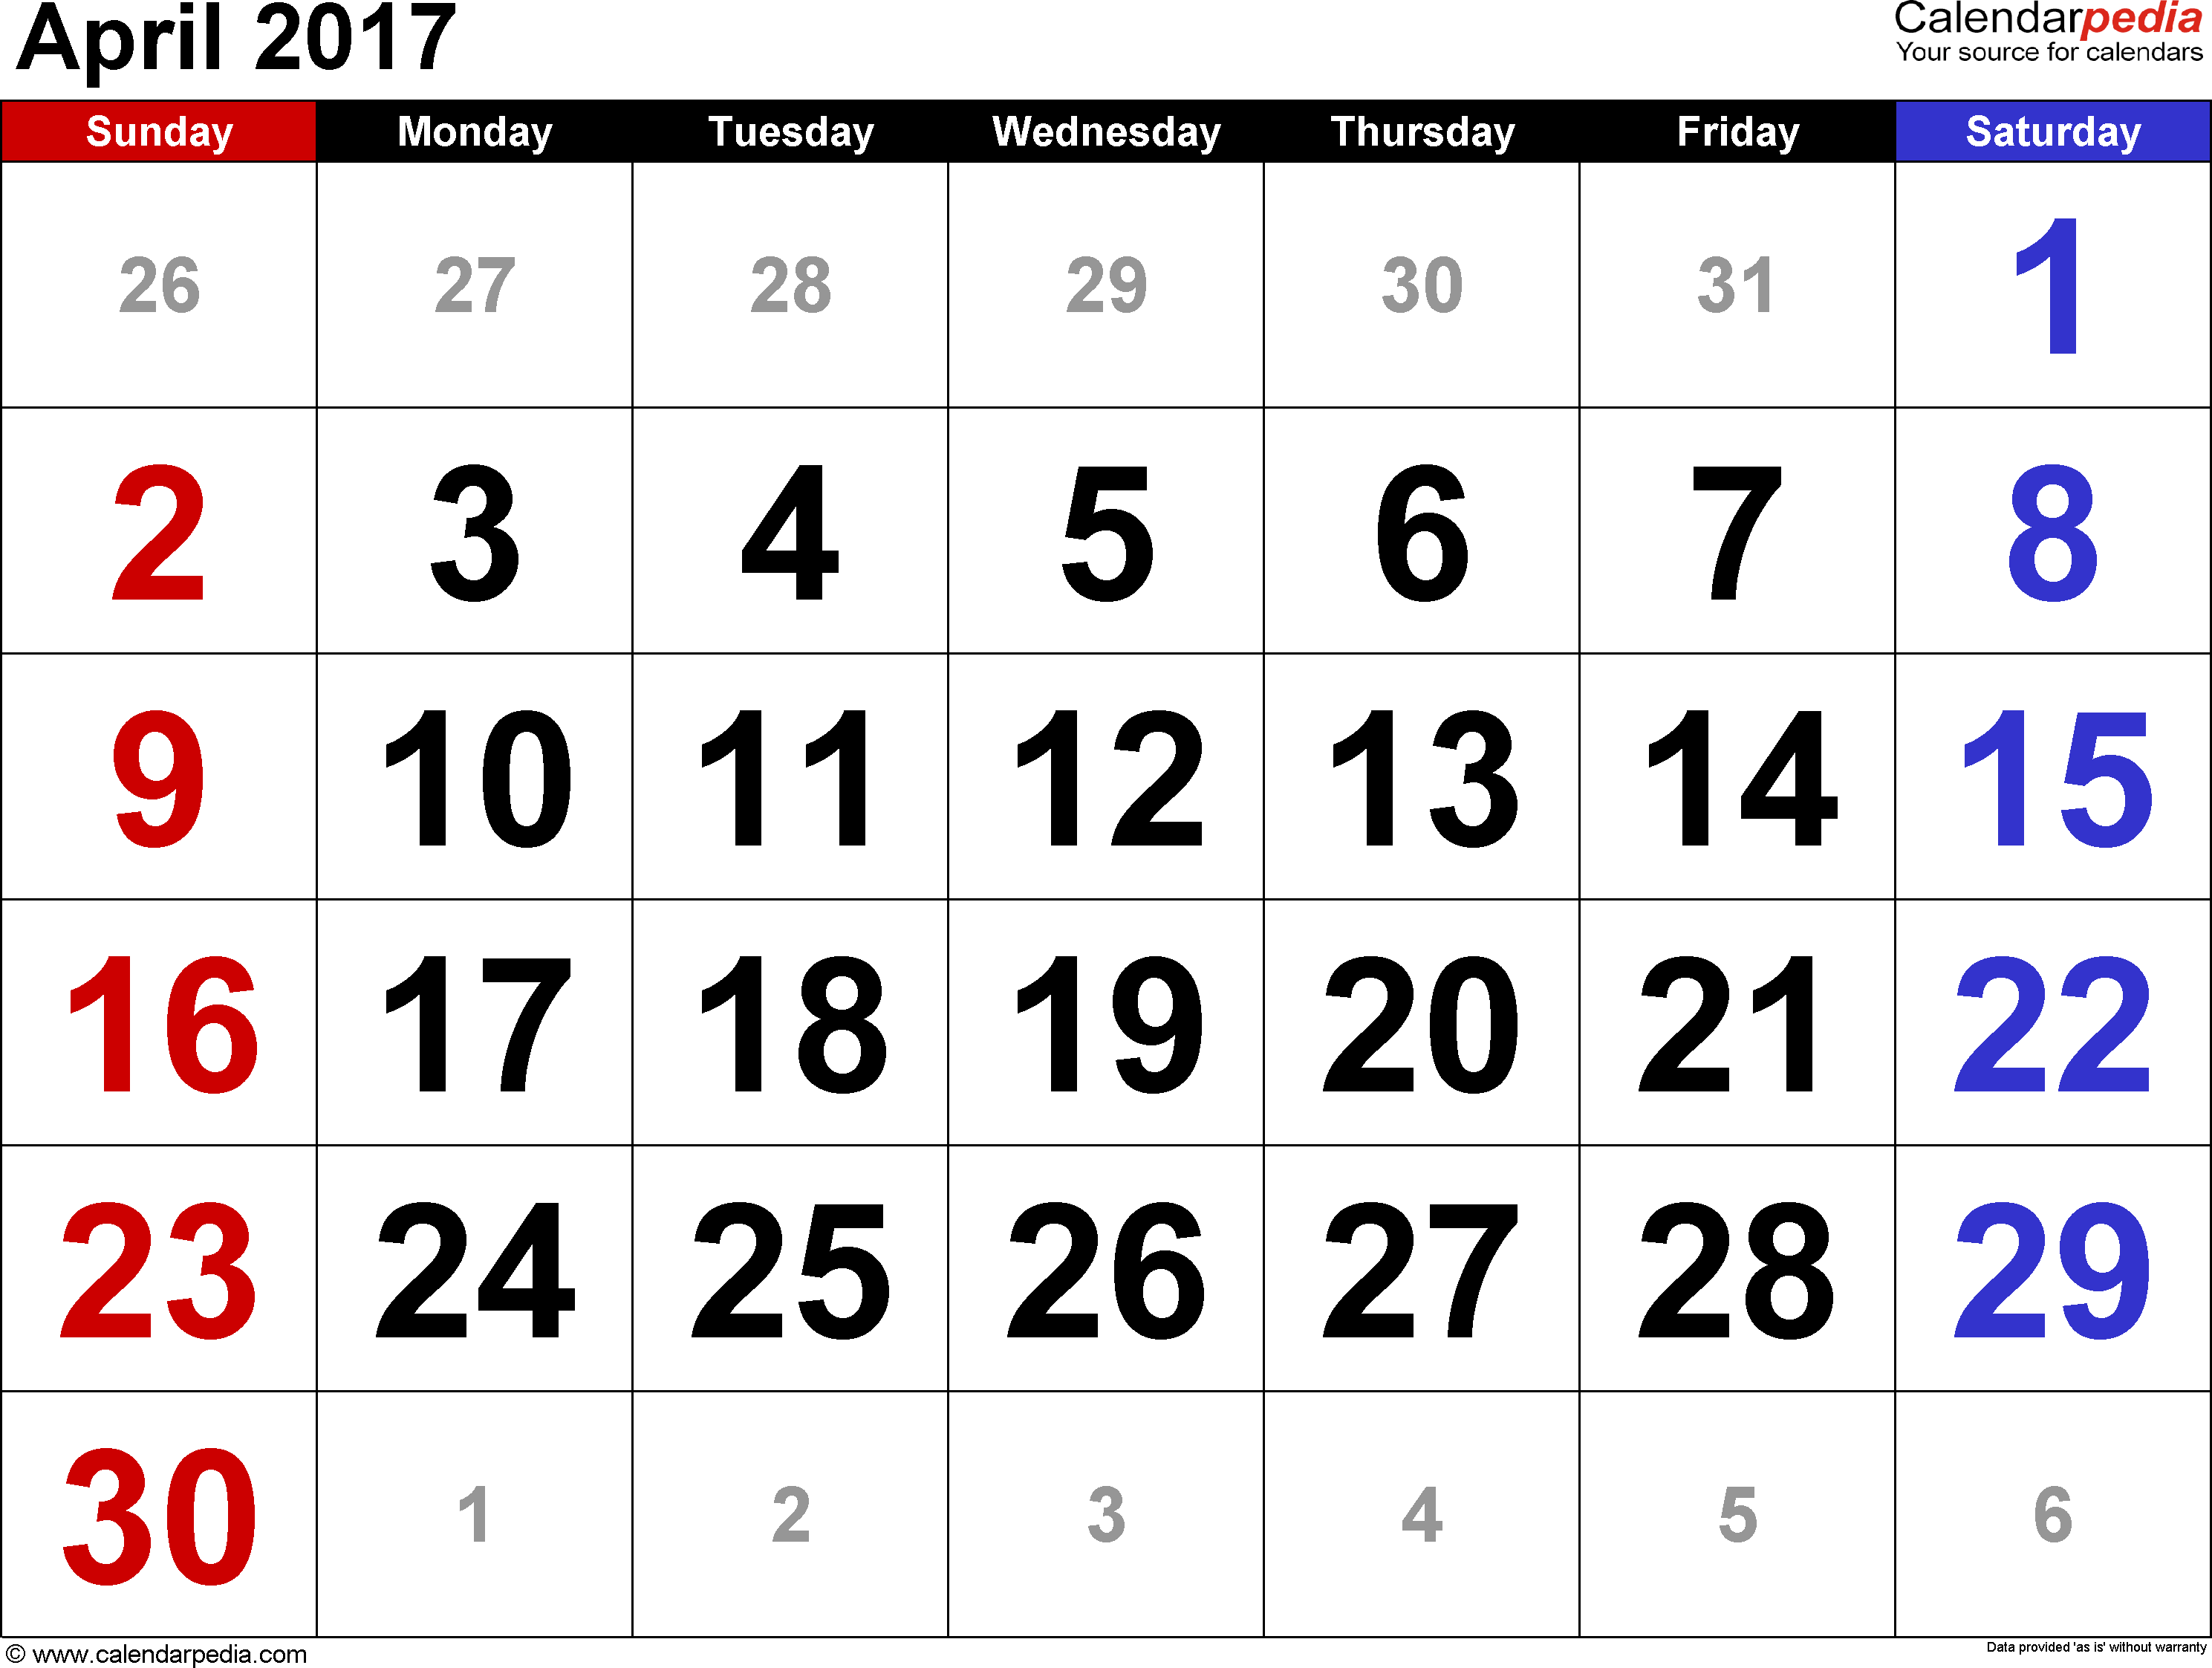 Calendar April 2017 : April calendars for word excel pdf